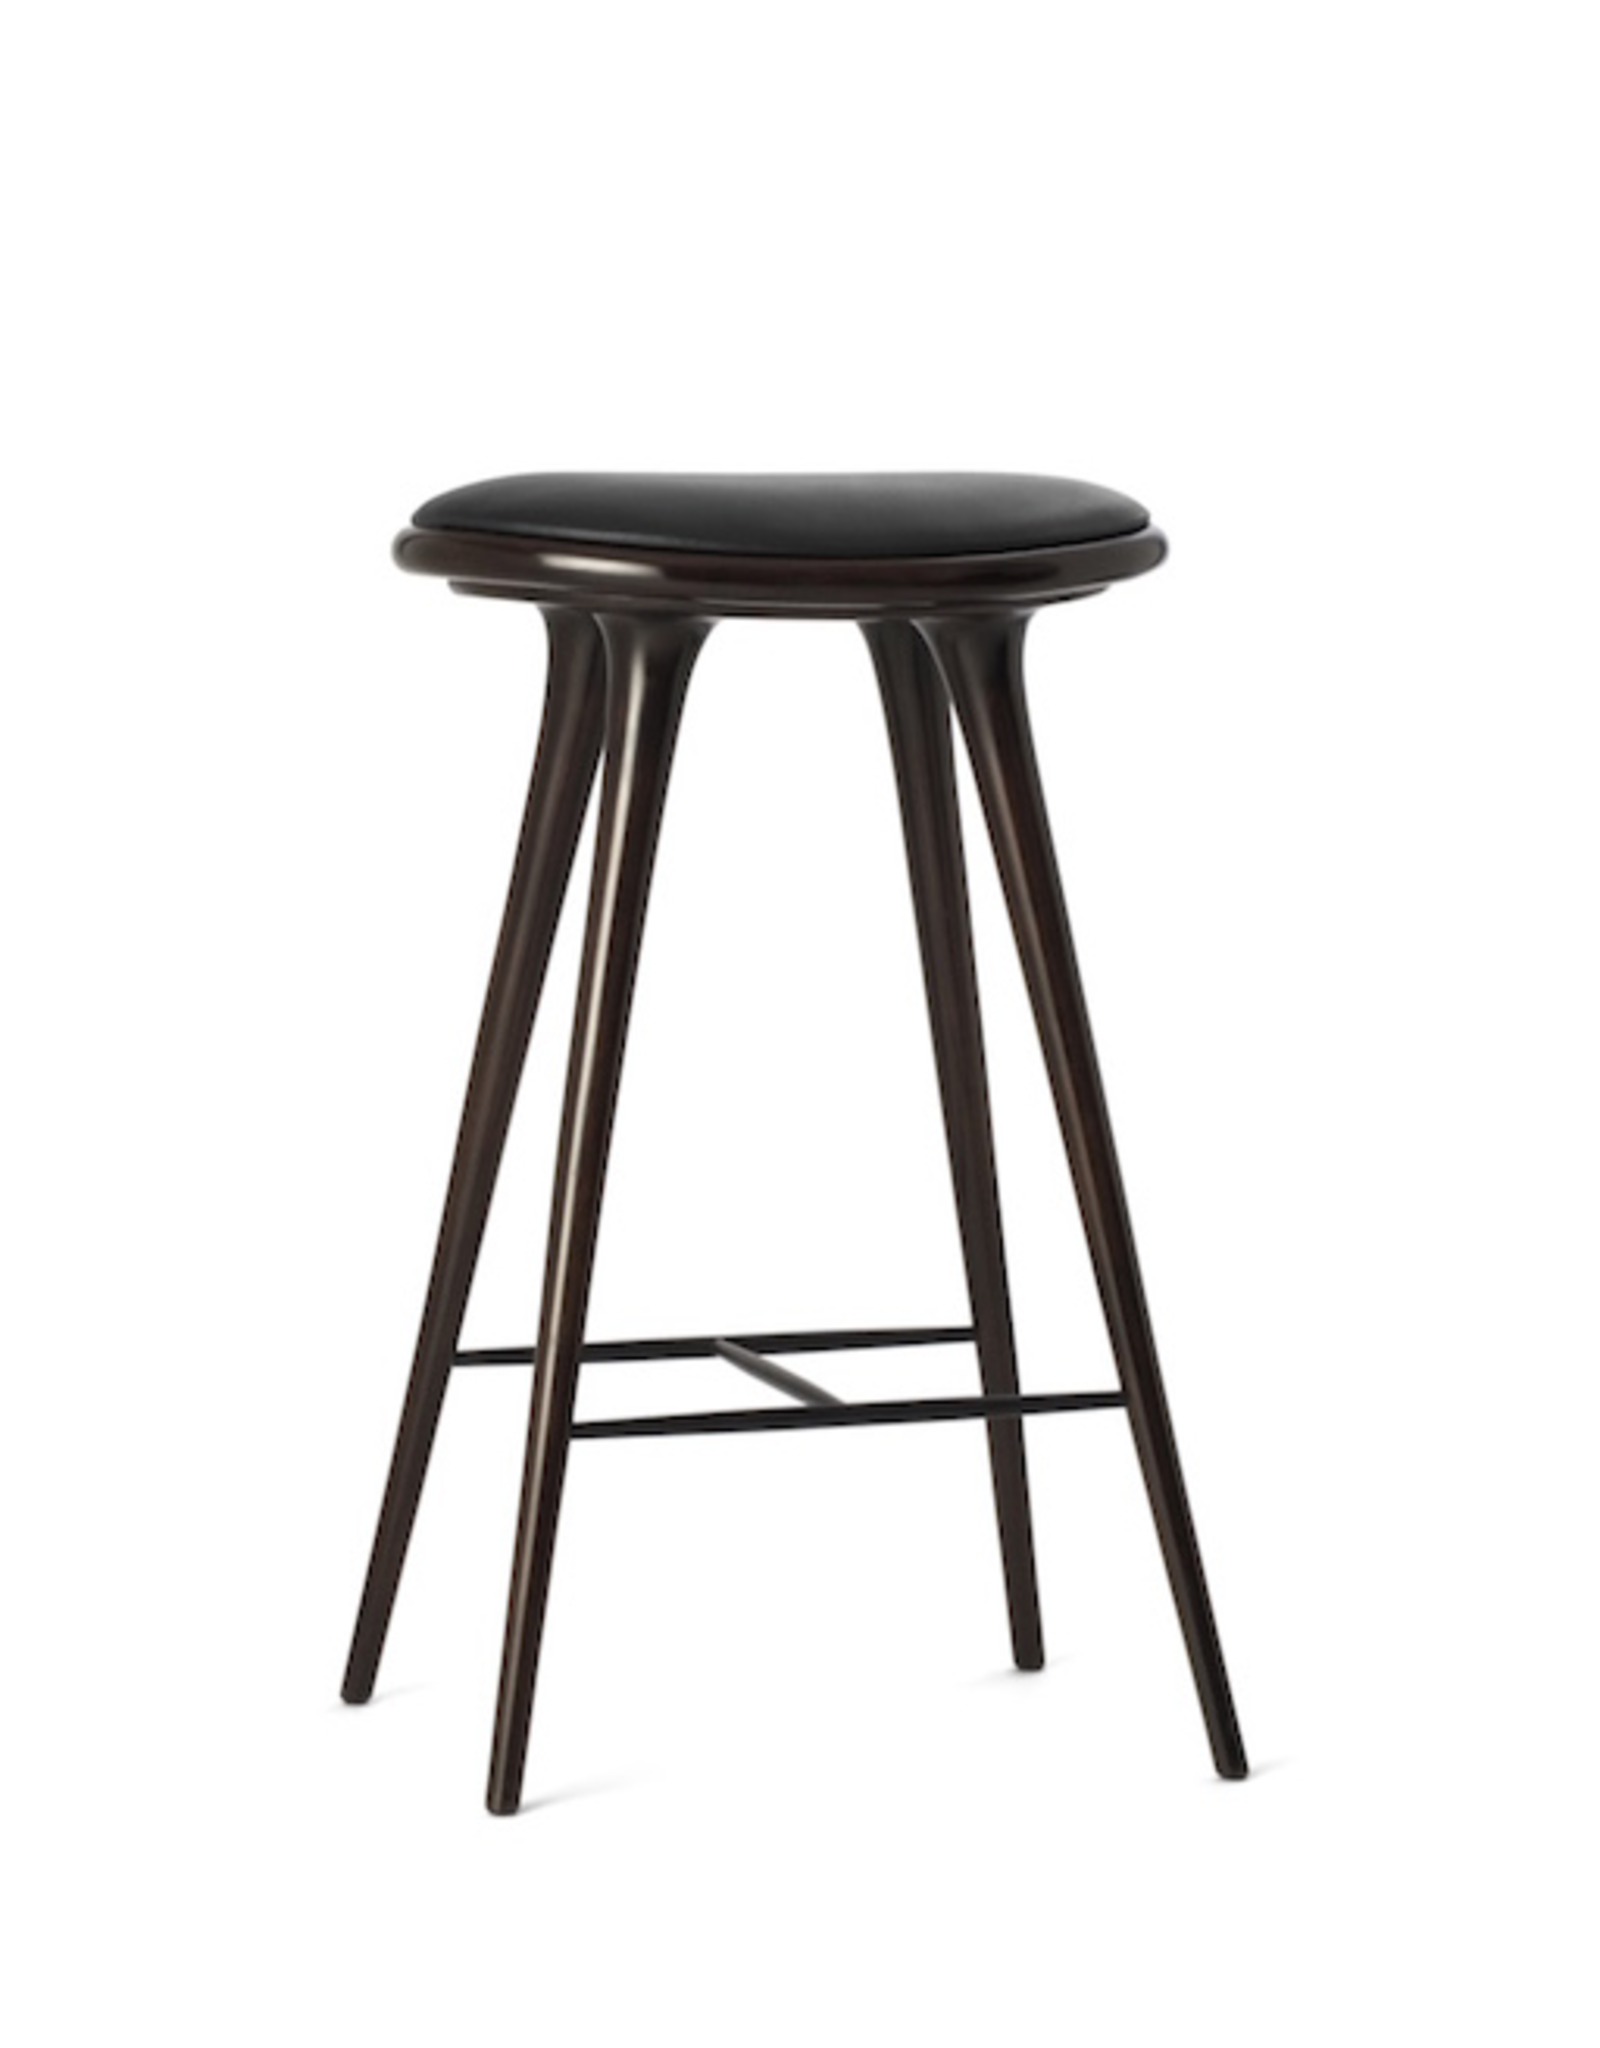 MATER ETHICAL MEDIUM HIGH STOOL, DARK STAINED HARDWOOD